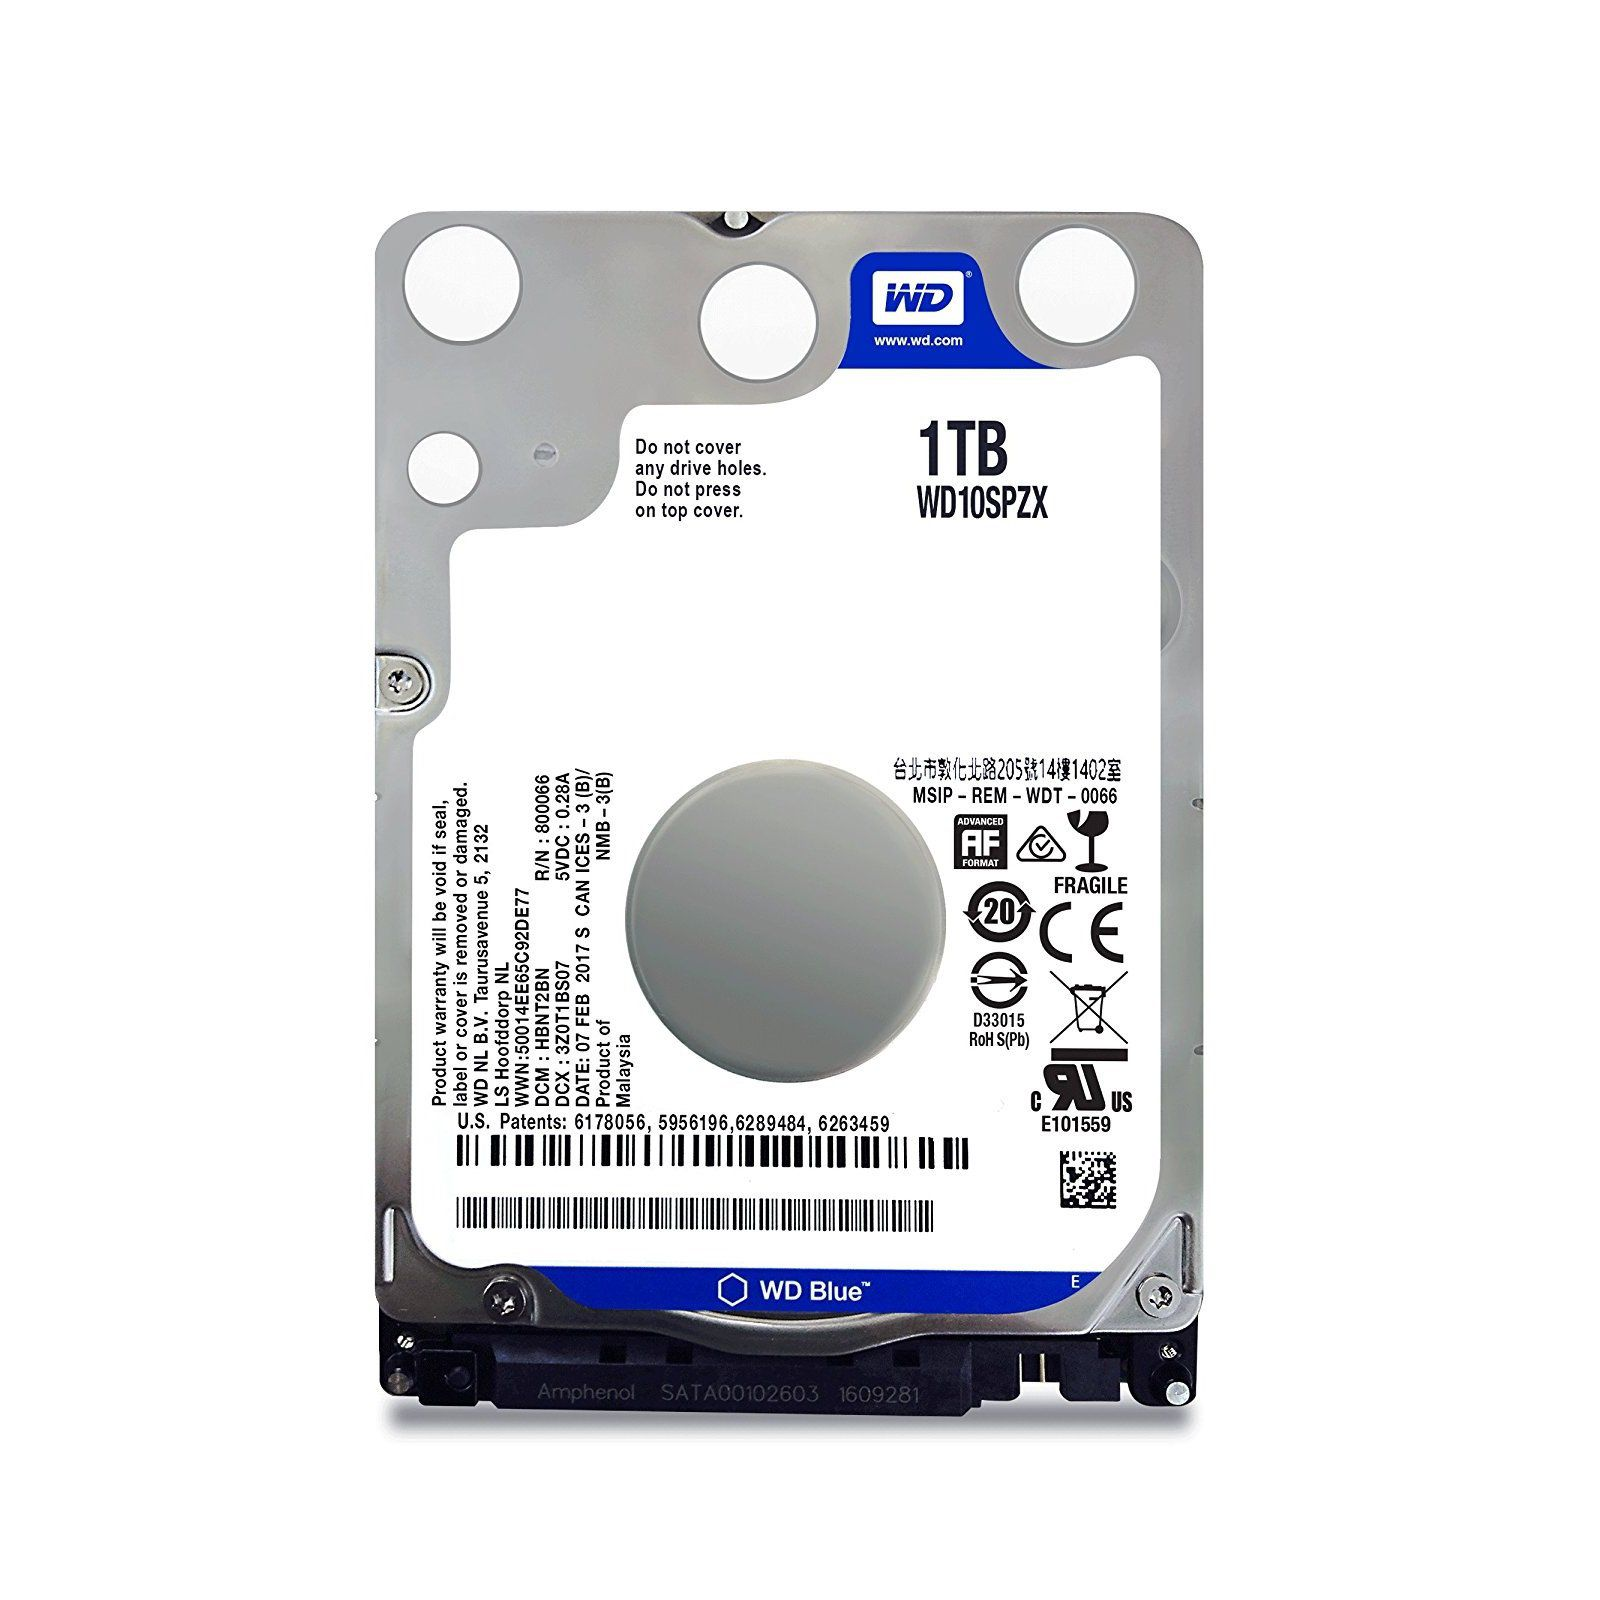 HD WD (Western Digital) Blue Notebook 1TB 5.400RPM 16MB Cache Sata III 2.5' 6.0Gb/s - WD10SPZX